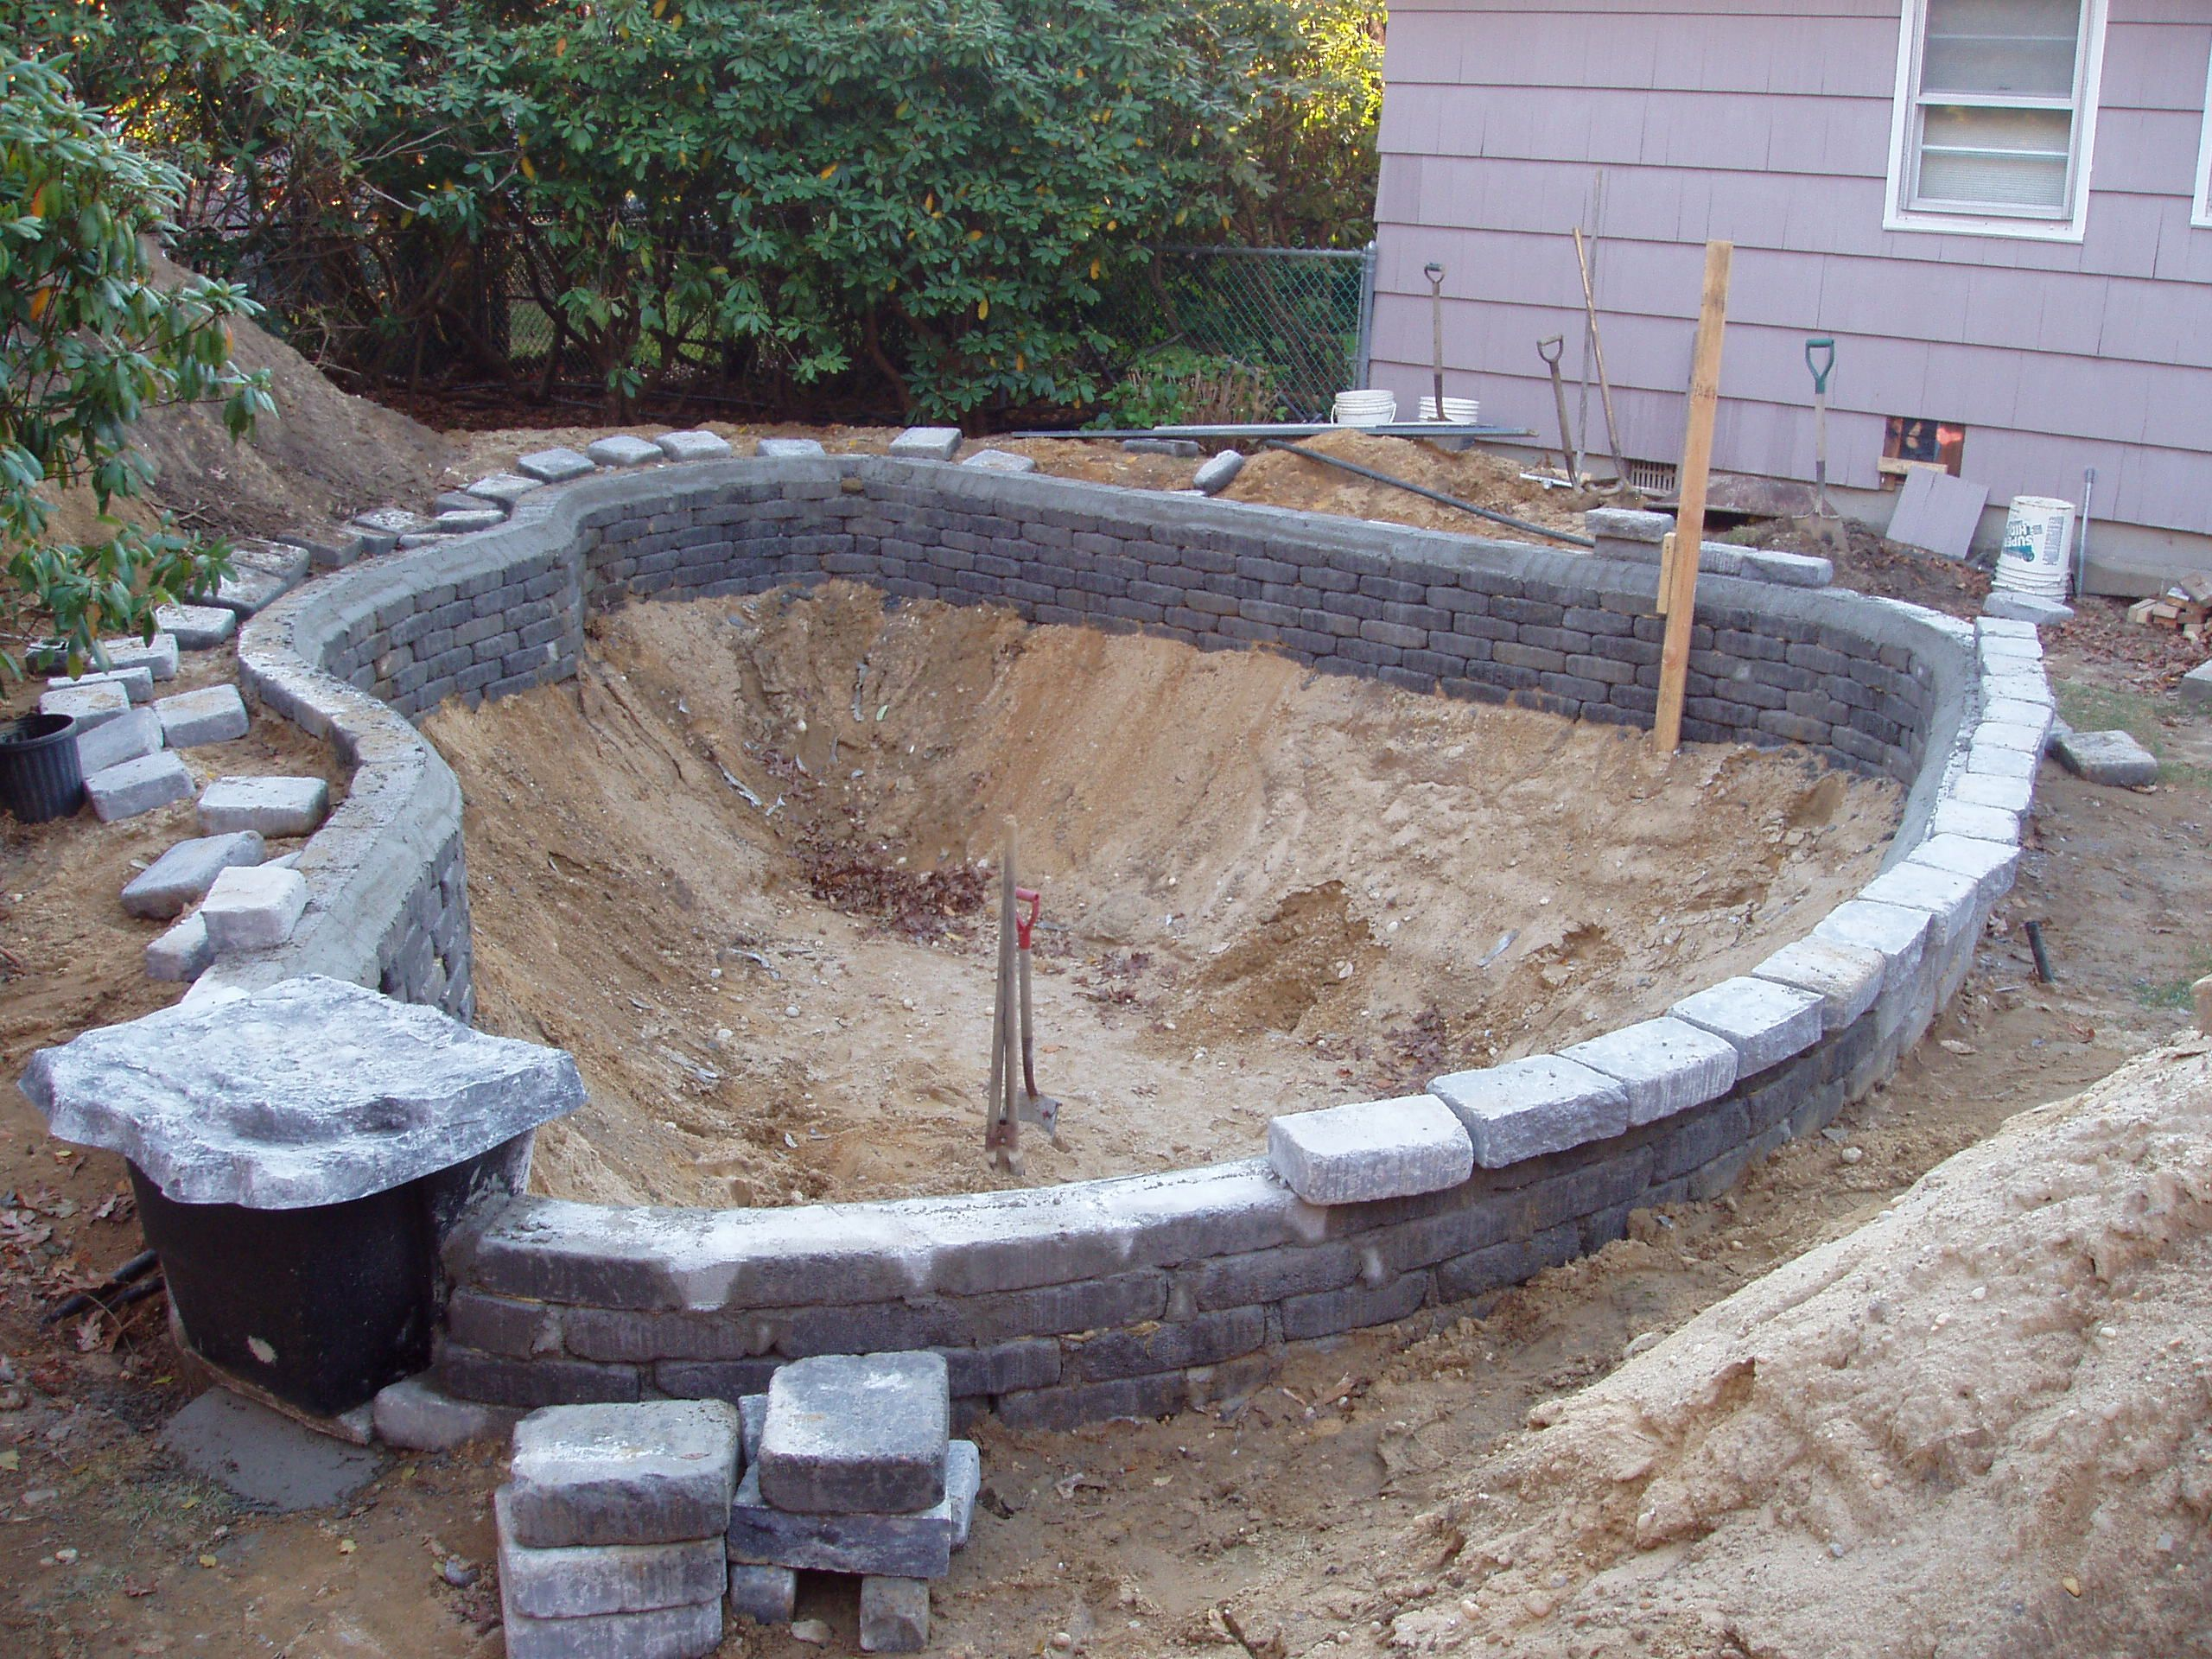 Pond design and construction google search aquaponics for Koi pond design ideas